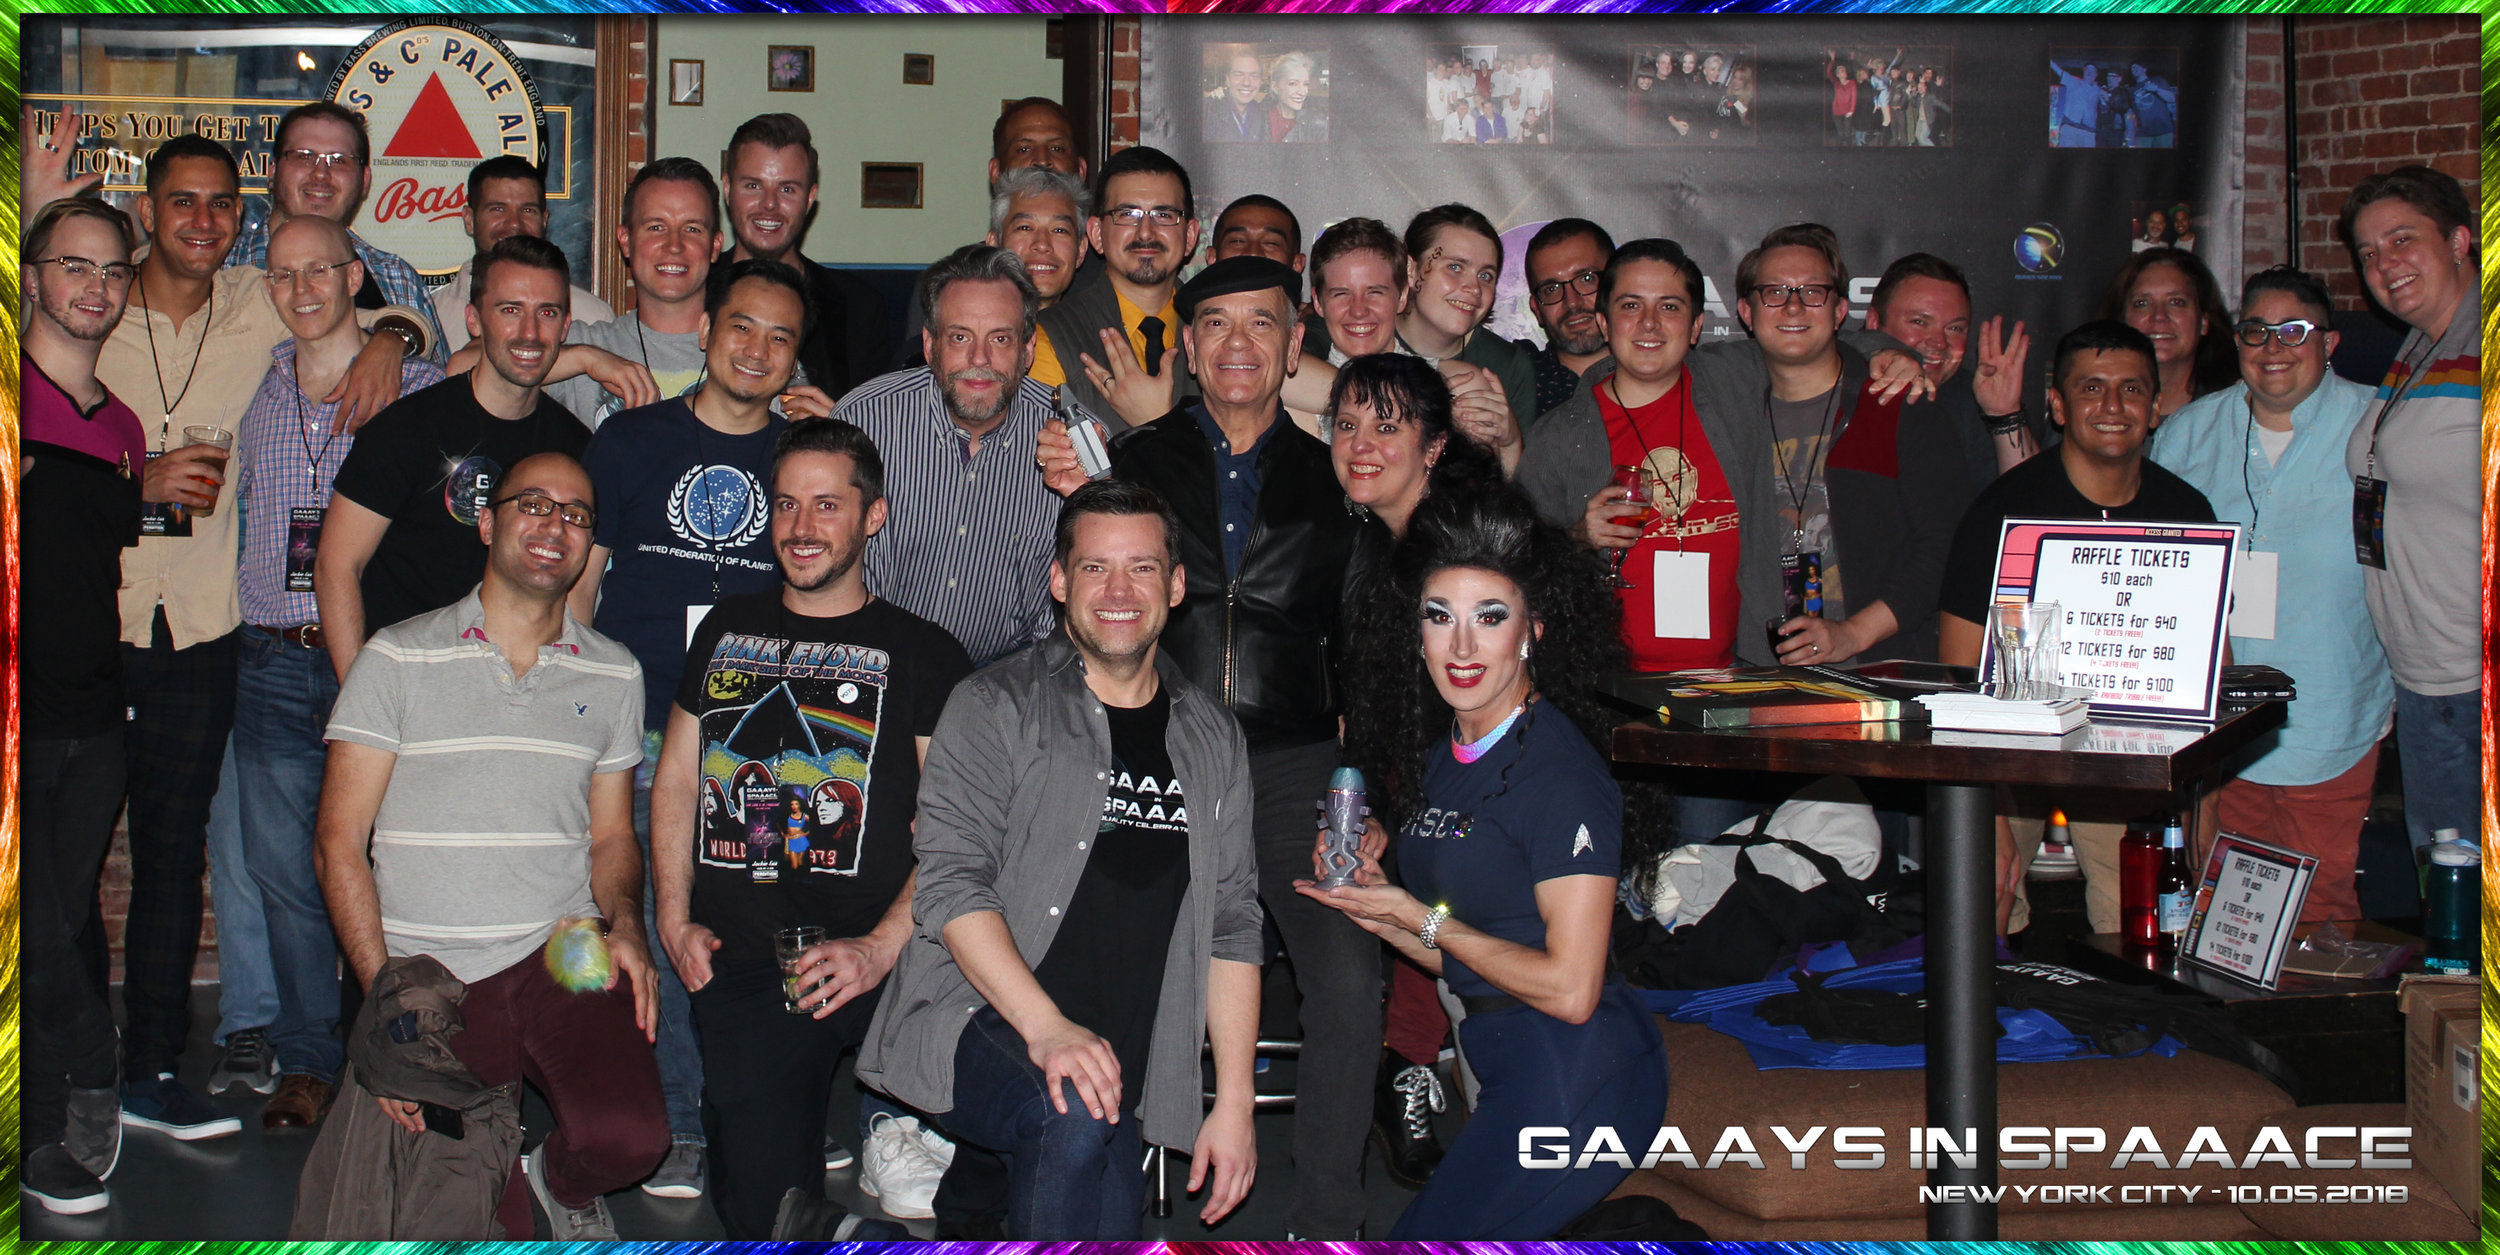 GIS-NYC-10-05-2018-EXTRA-WIDE-GROUP-PHOTO-2.jpg